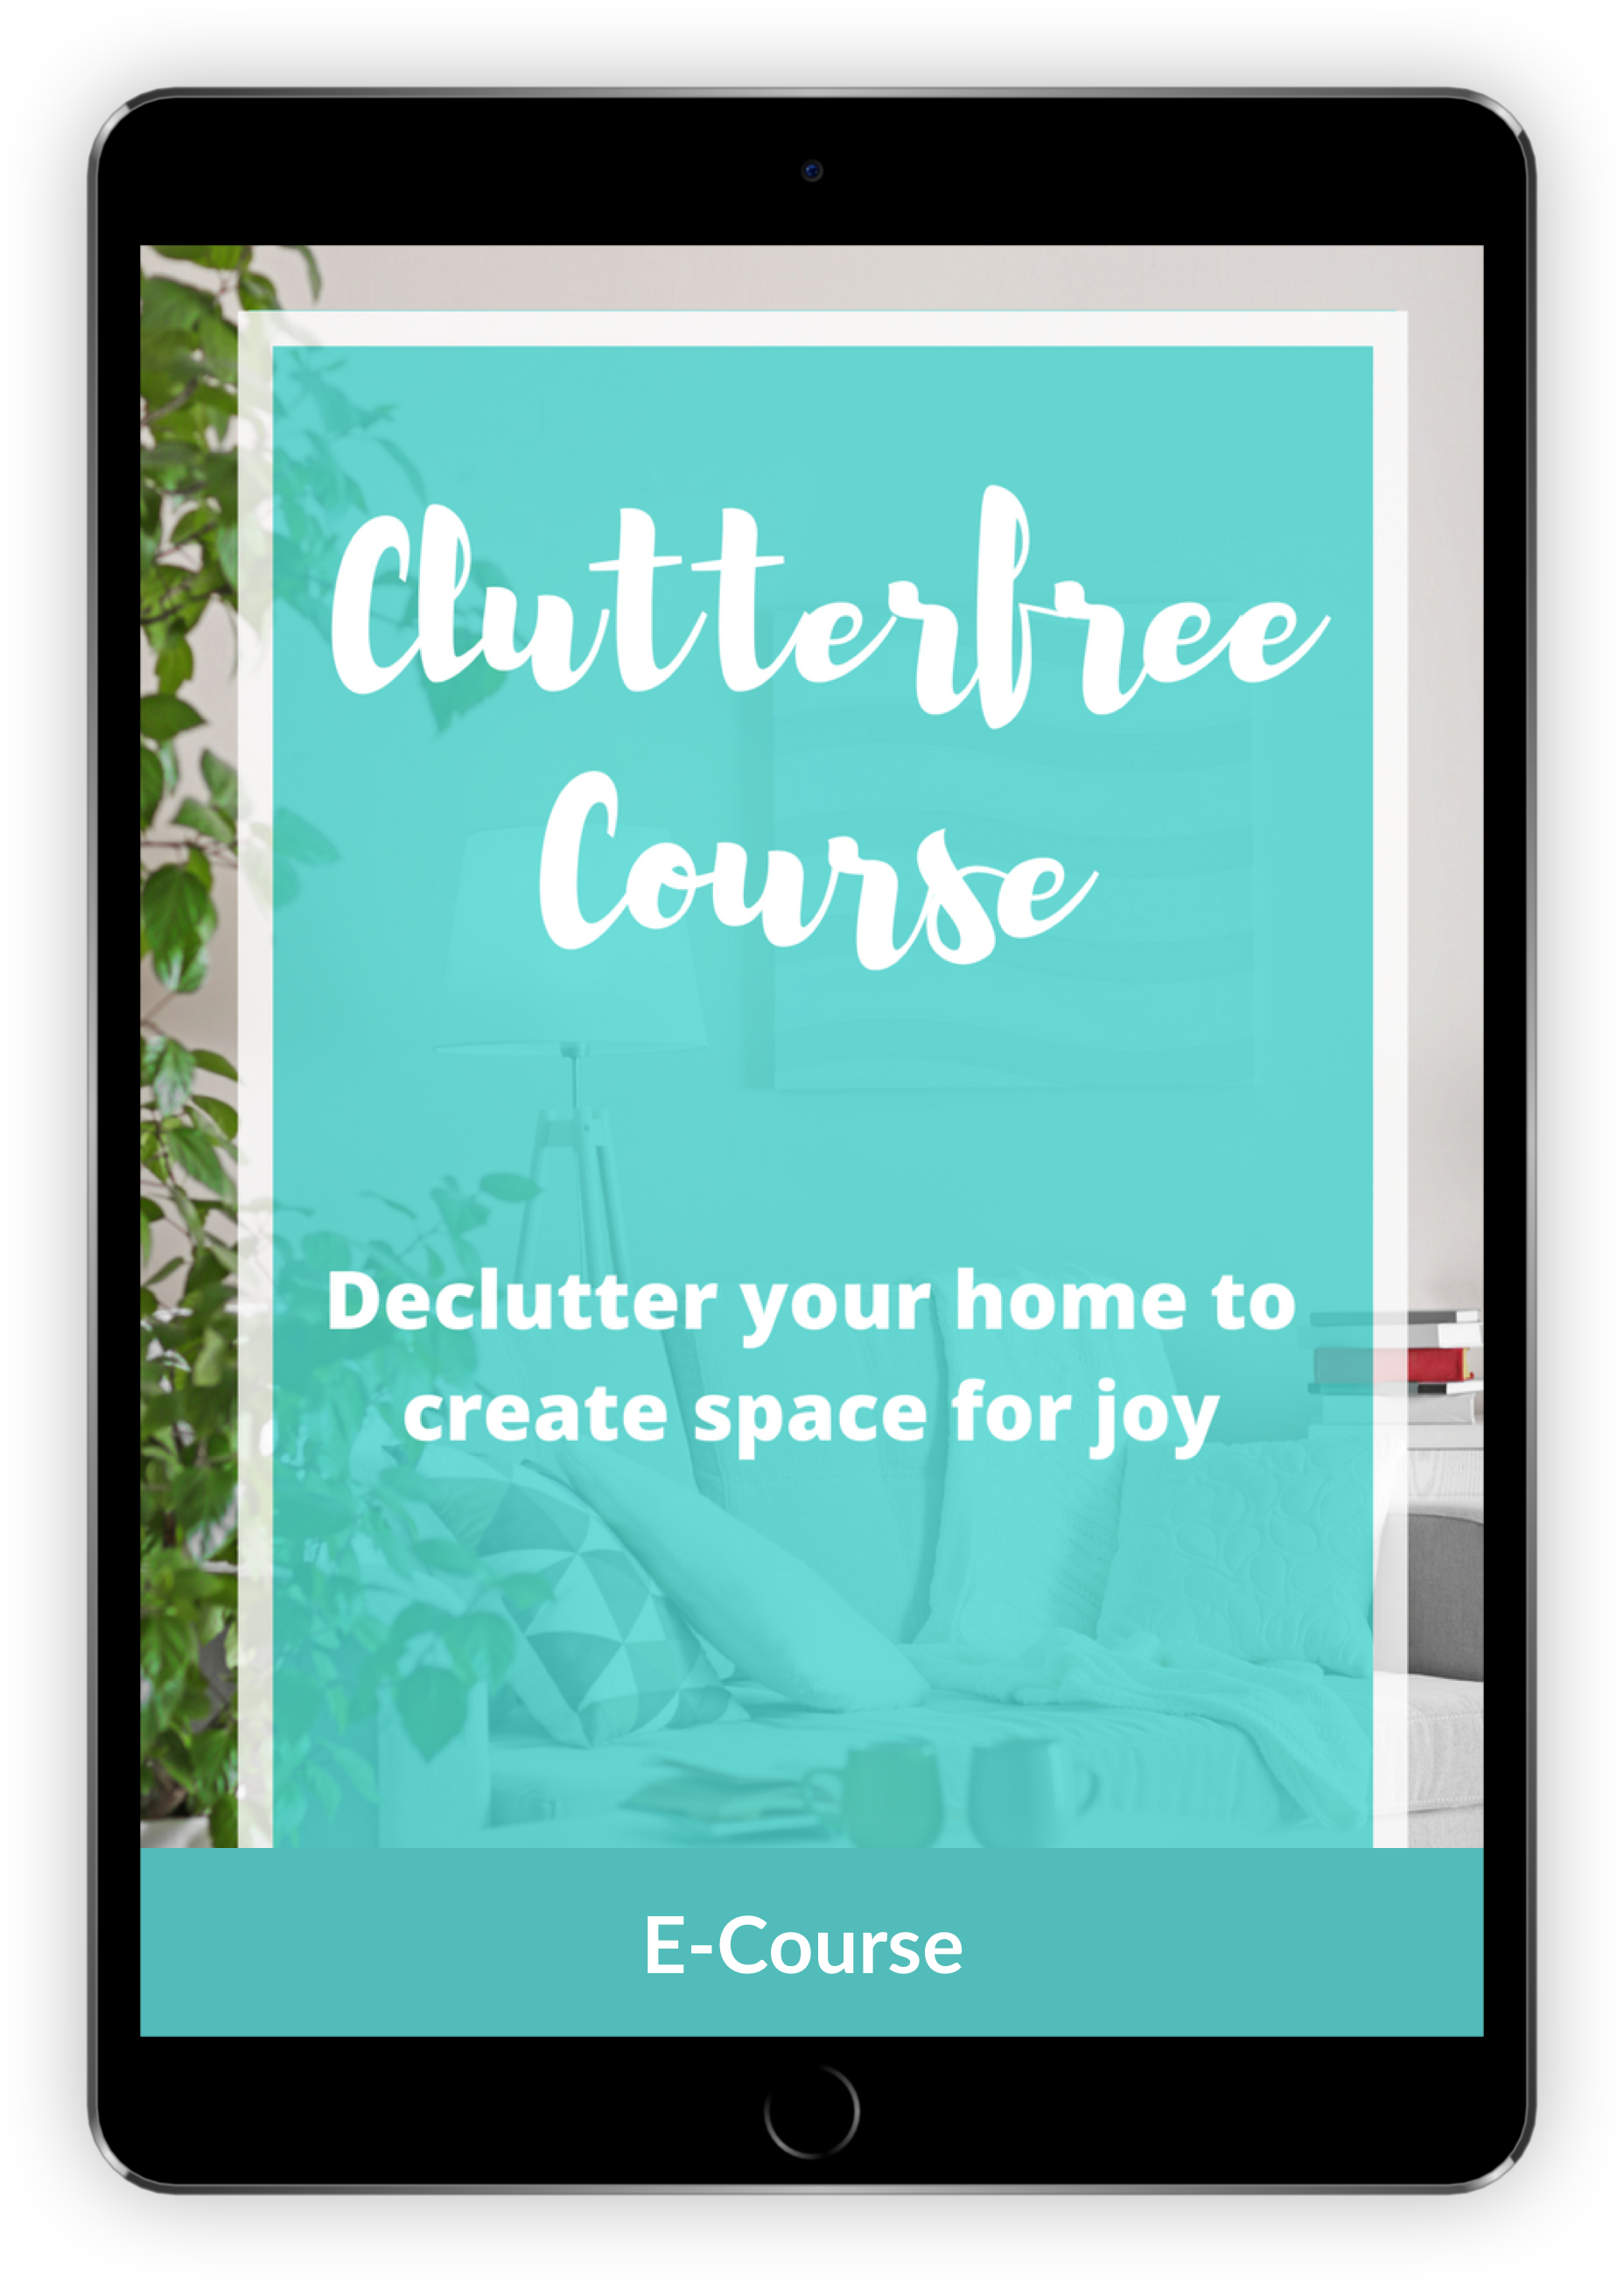 Clutterfree Course Mockup - Copy.png